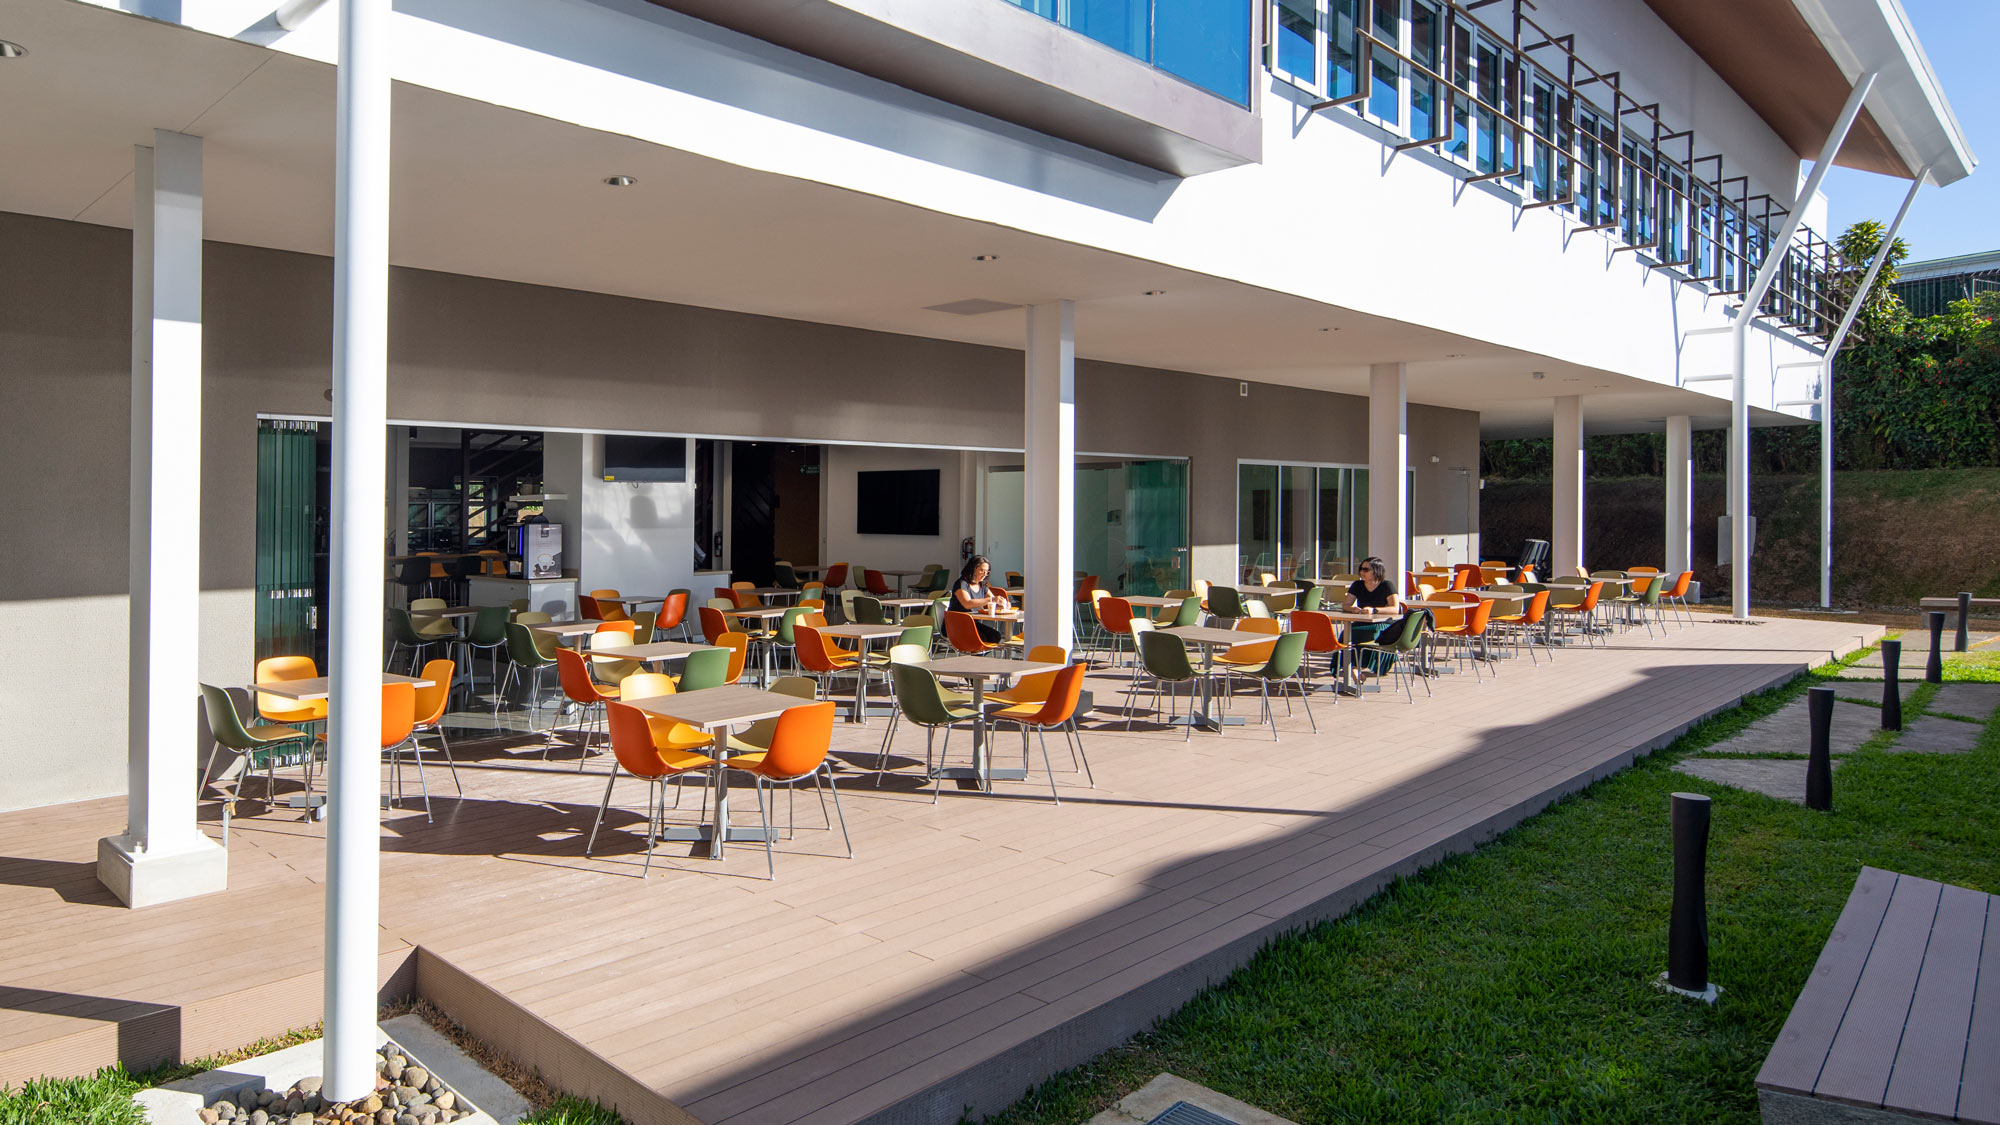 A photograph of an open-air office cafeteria with colorful seating on a patio bordered by green grass.